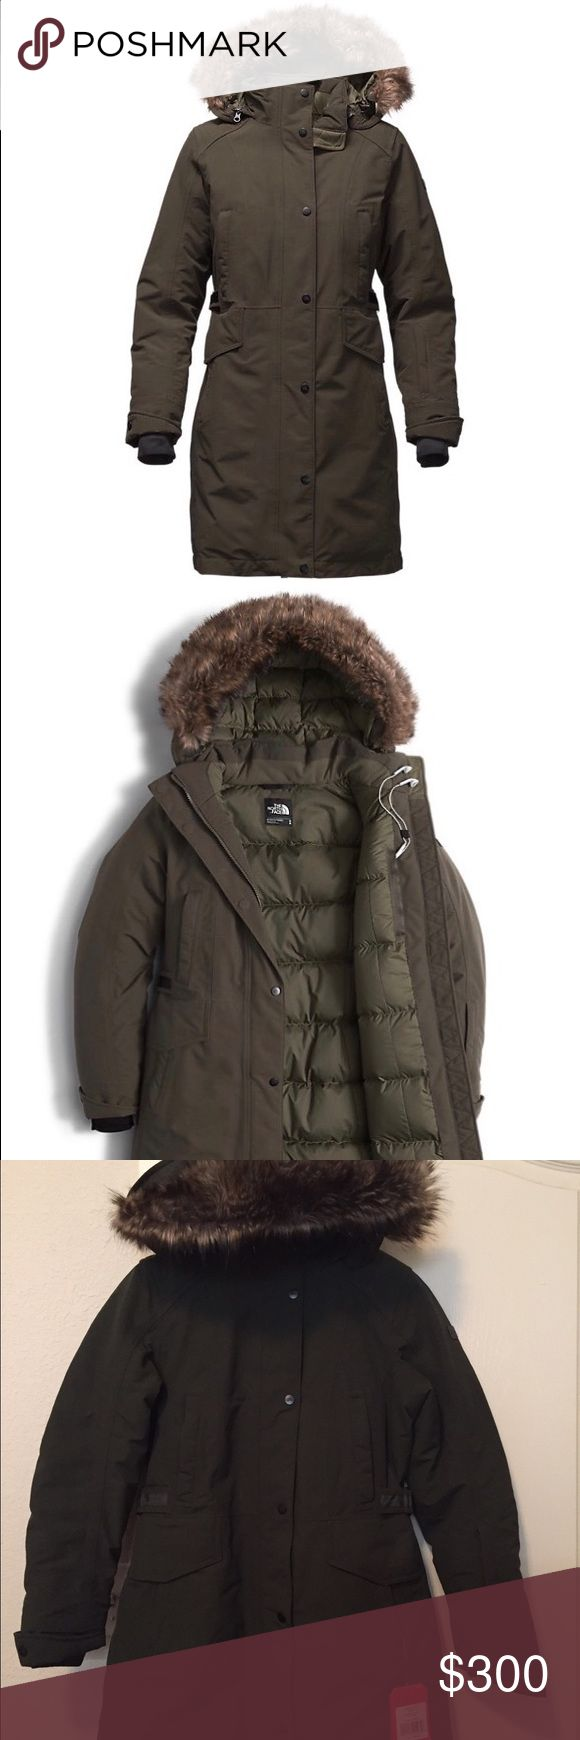 Brand New with Tags North Face Tremaya Parka Women Brand new with tags! Goose down, size MEDIUM, color- Rosin Green. Original price $420 The North Face Jackets & Coats Puffers